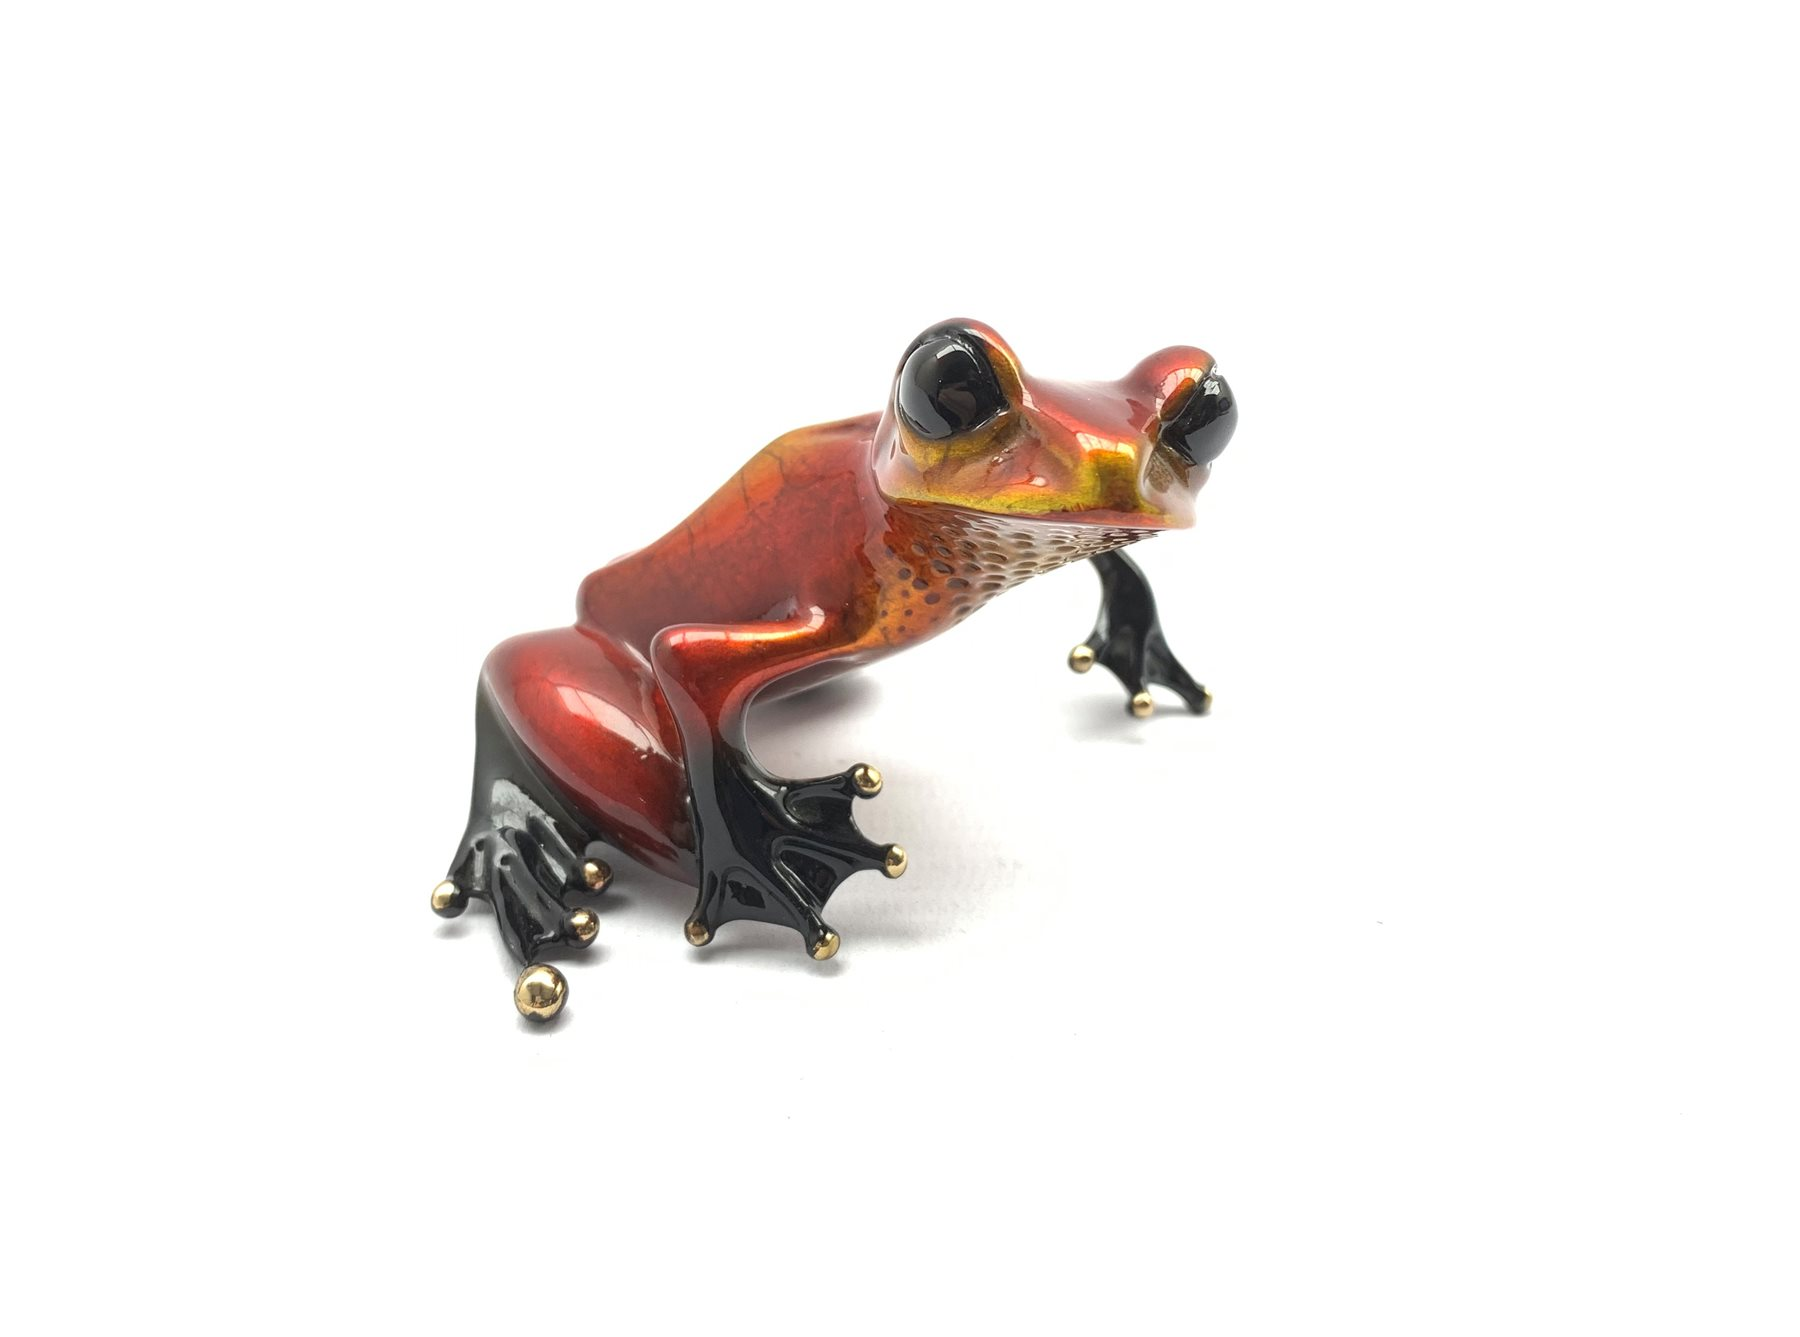 """Tim Cotterill (British 1950-): """"Scoundrel"""" Frogman, limited edition released 2007 (65/125) patina co"""